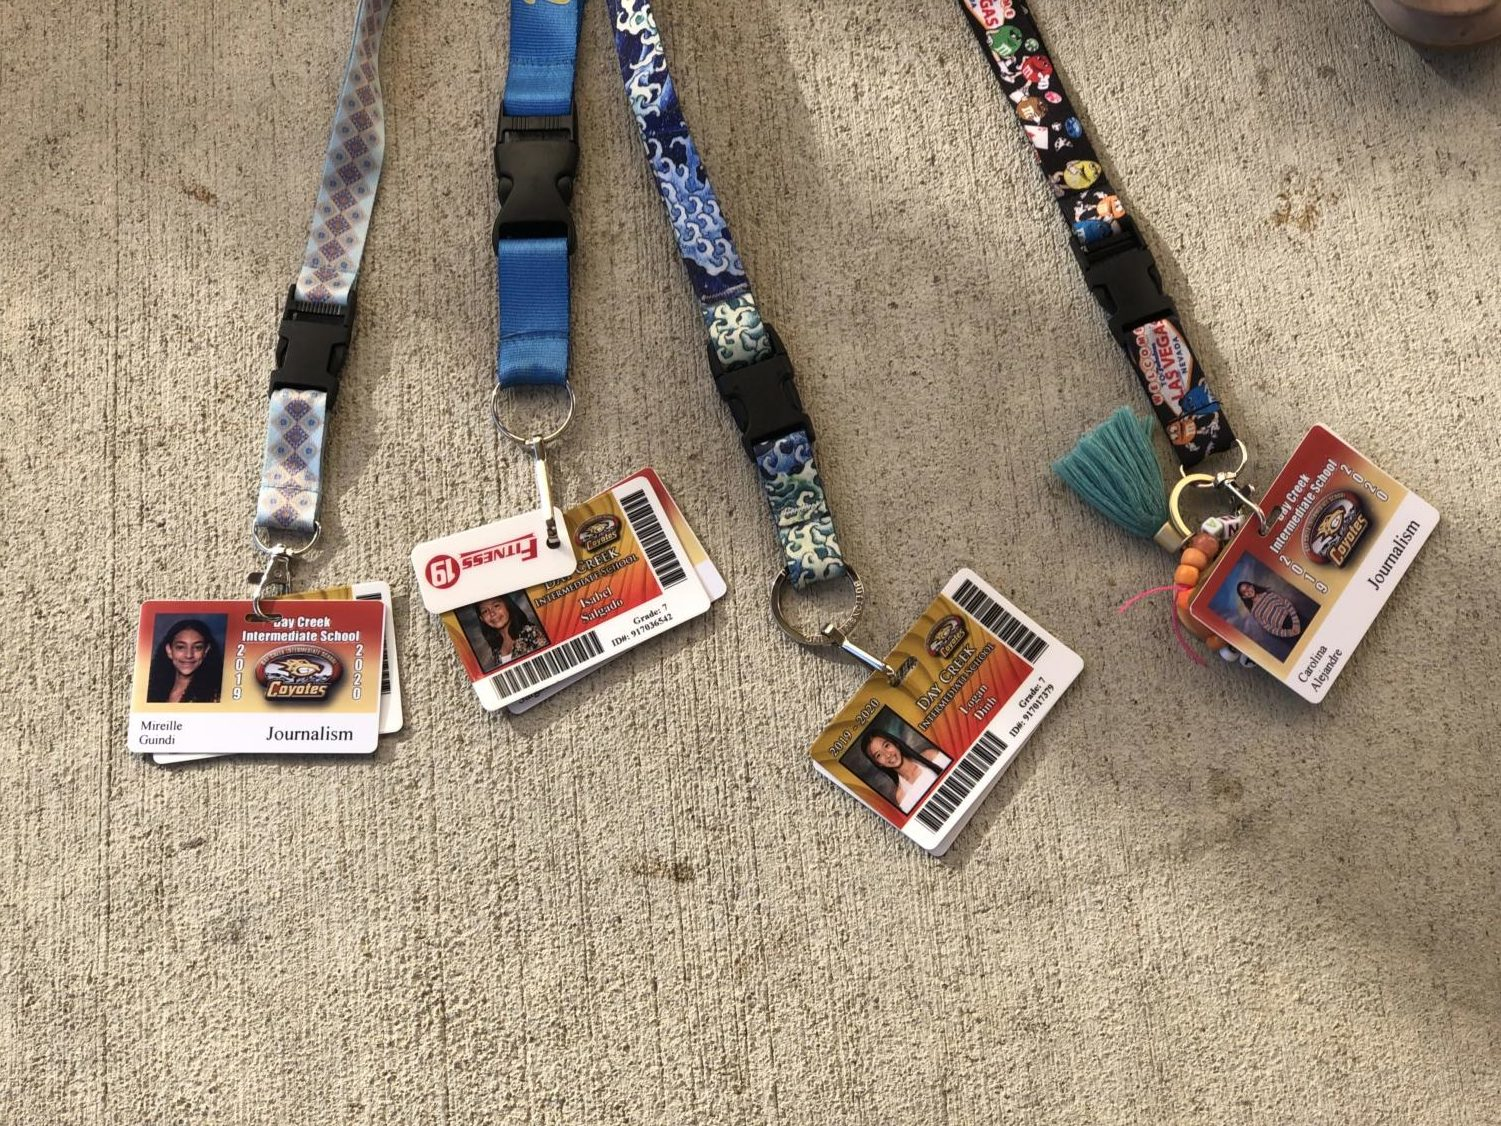 The lanyards have a purpose for safety and to reward the students for doing something courteous or generous.